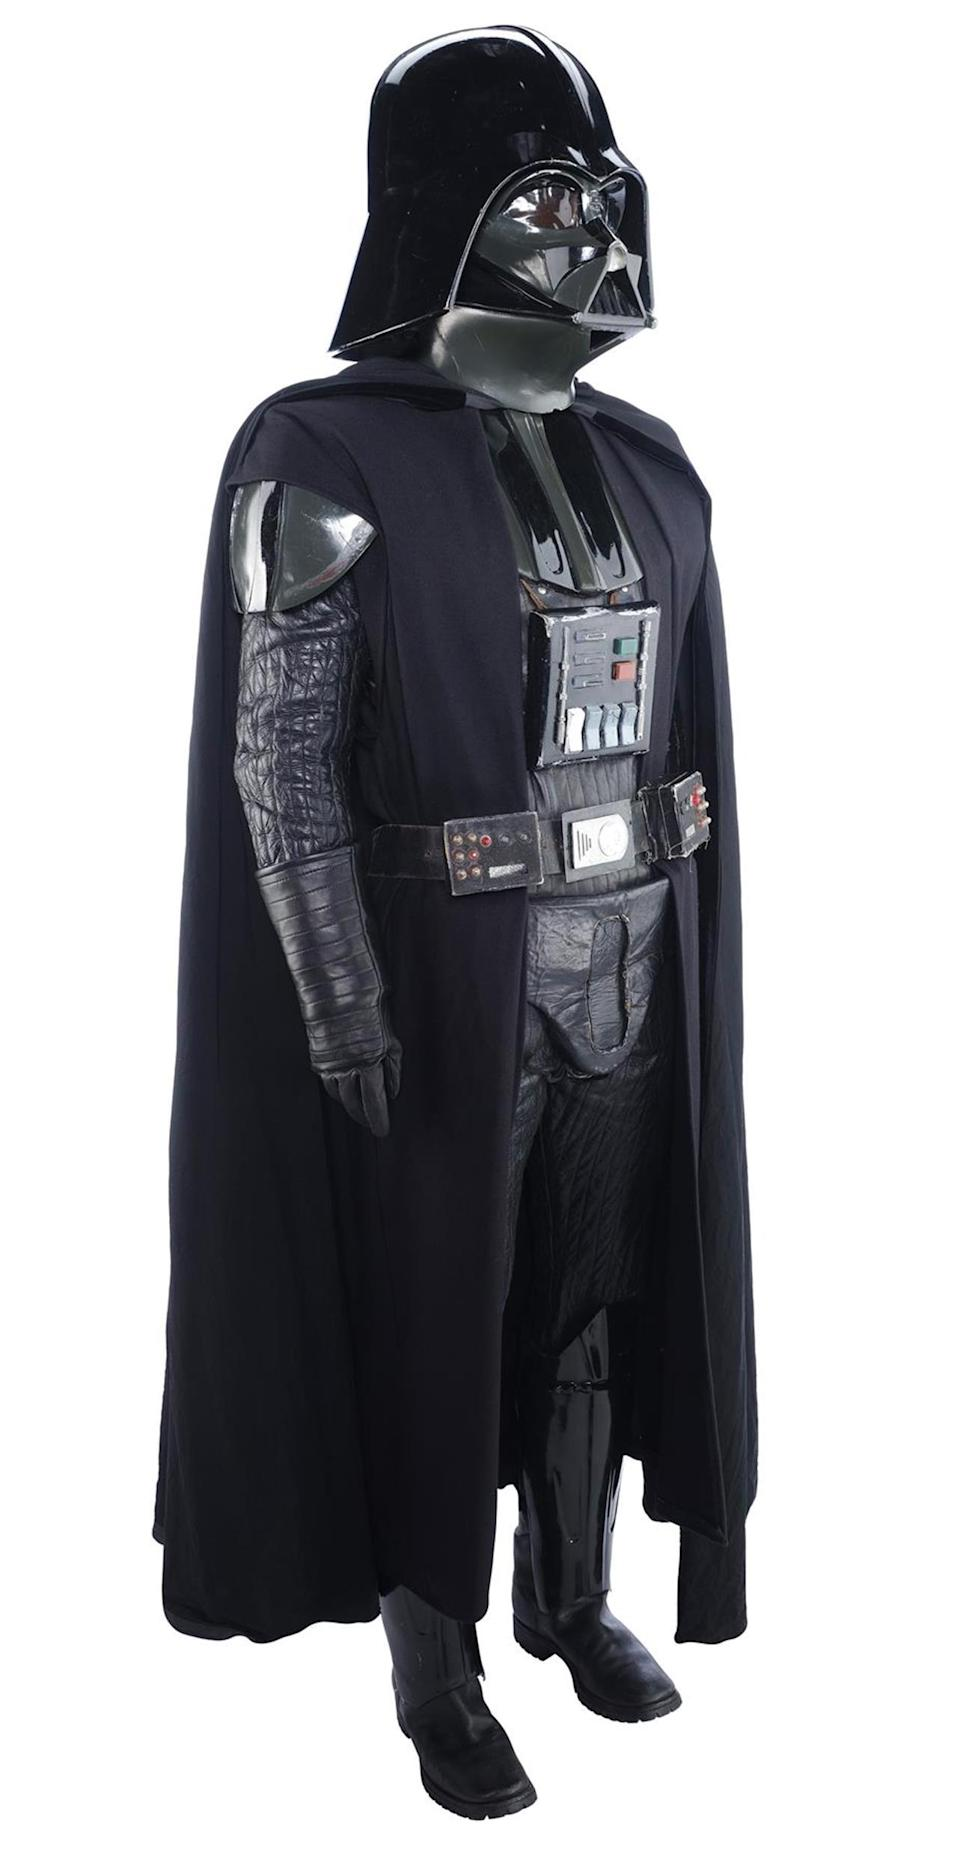 A Darth Vader promotional costume from the original Star Wars movie is going under the hammer (Prop Store/PA)